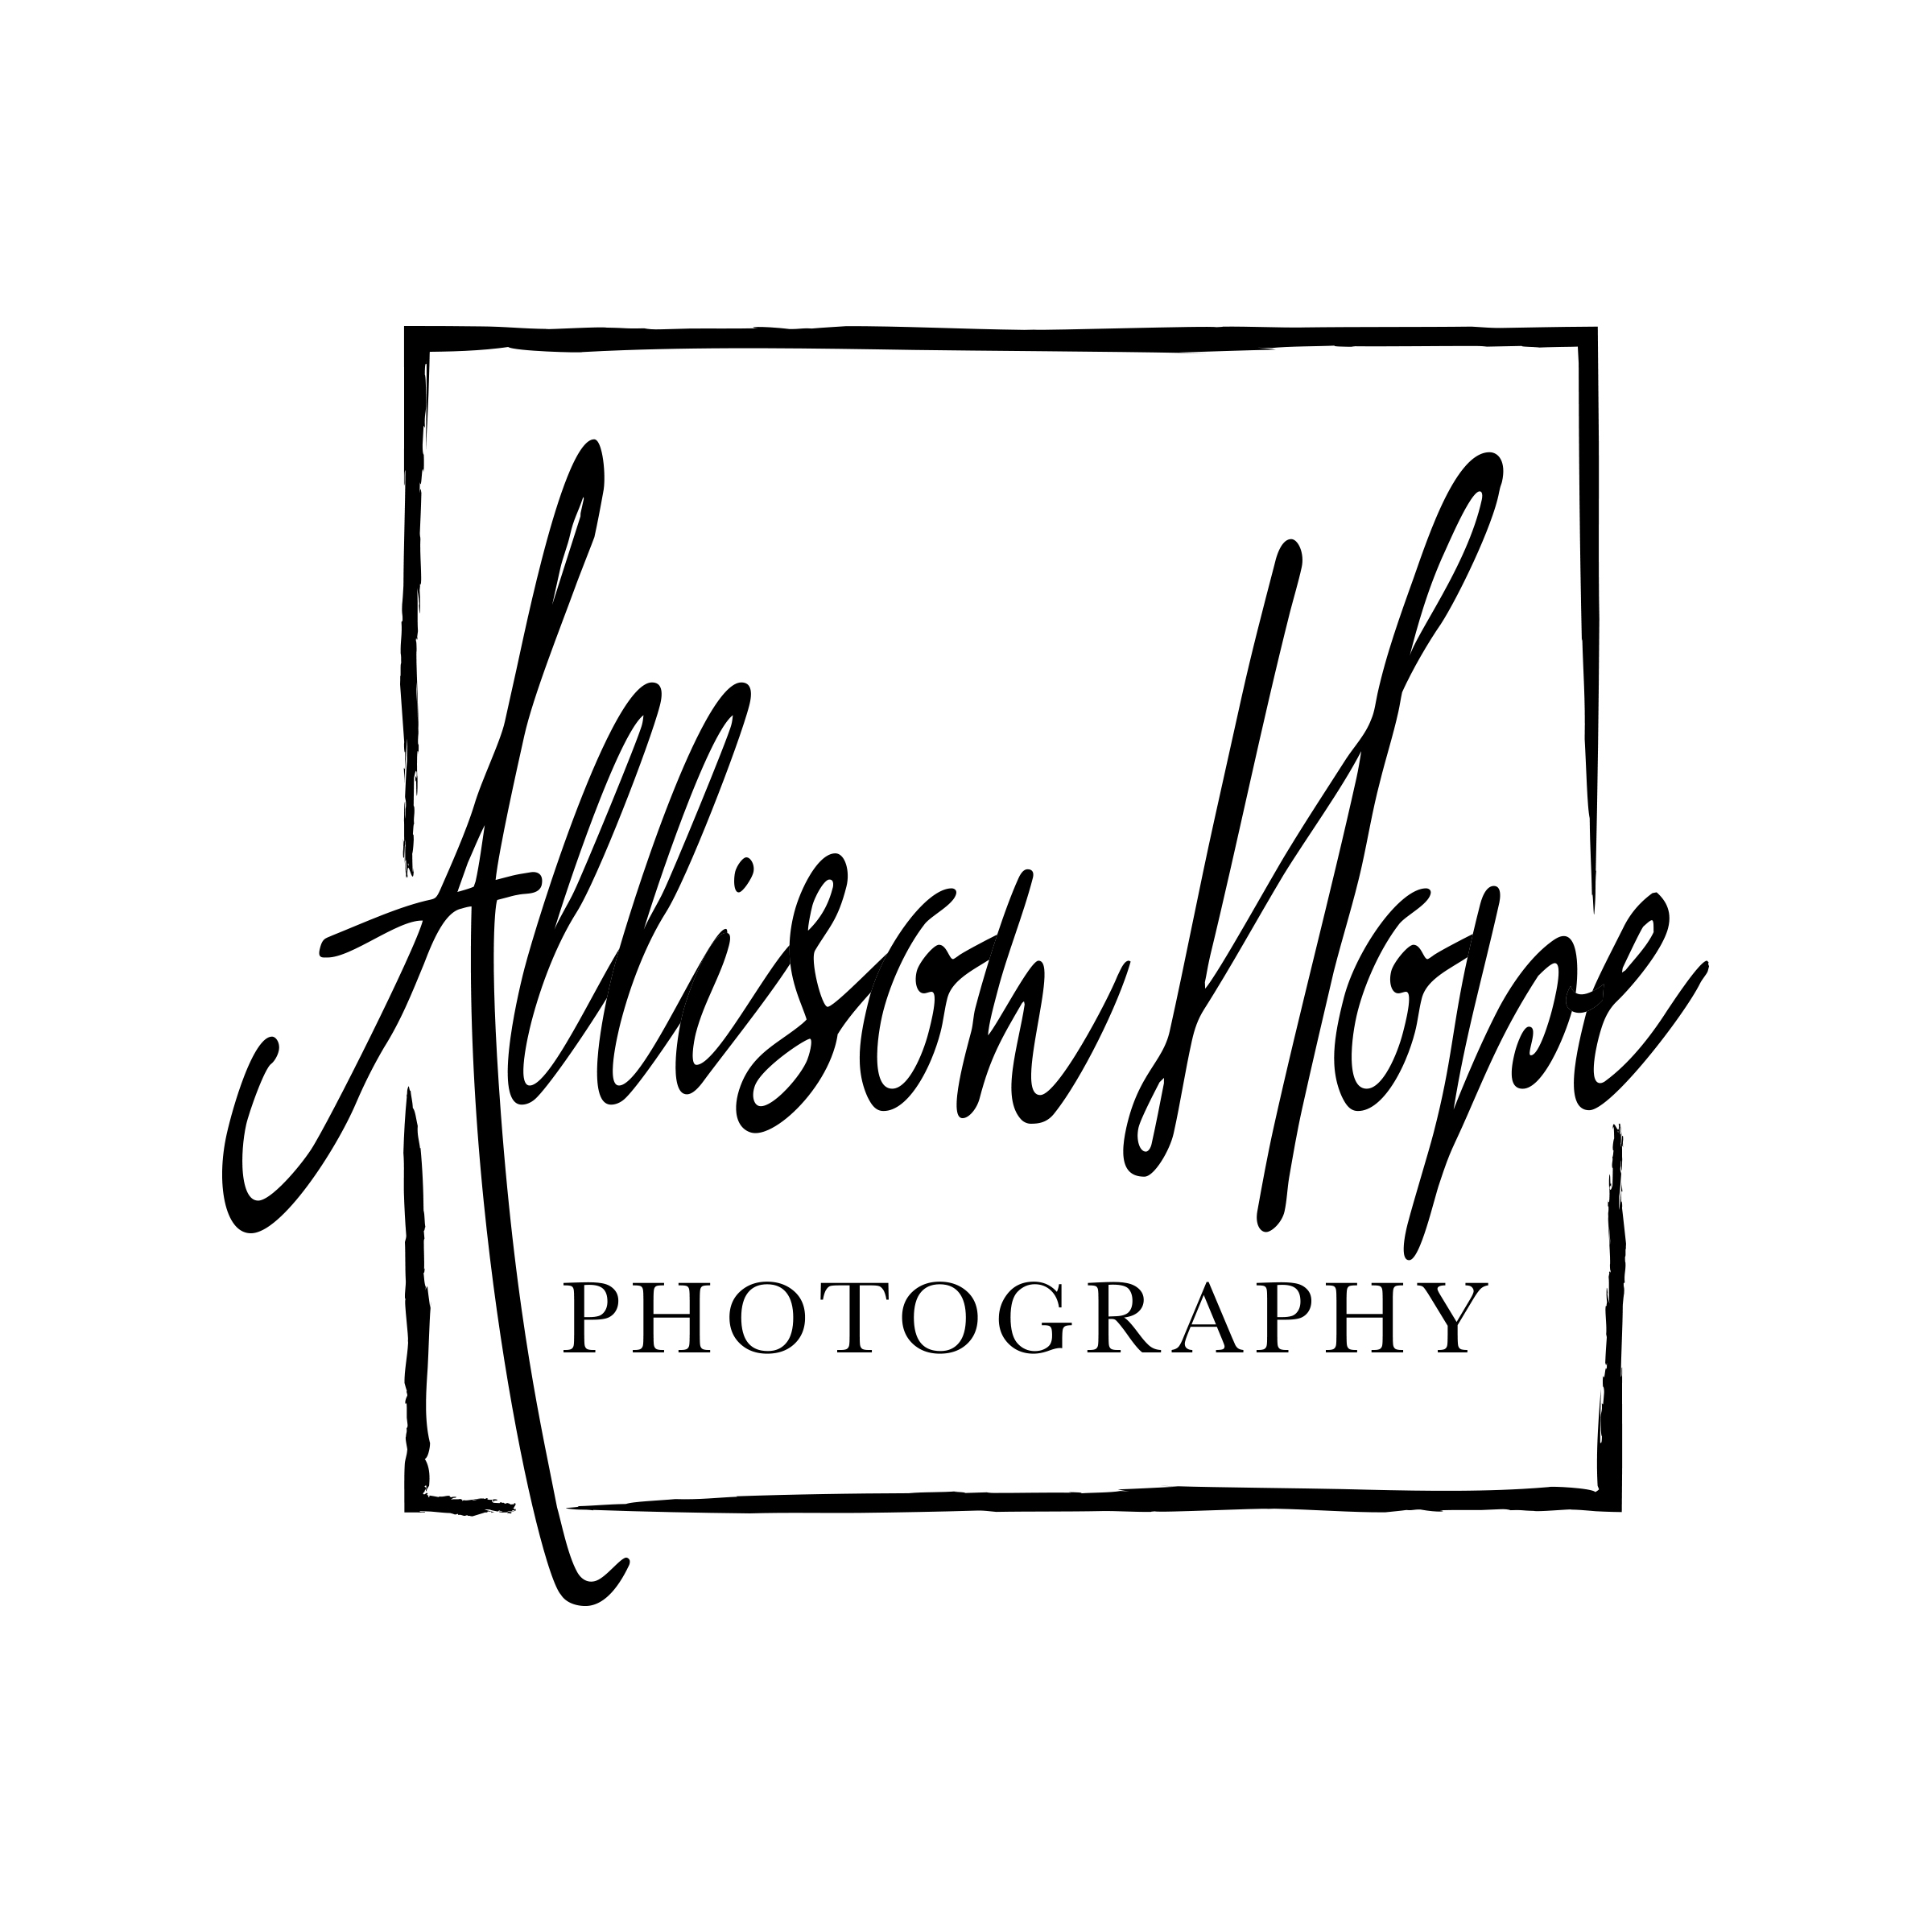 Allison Hope Photography